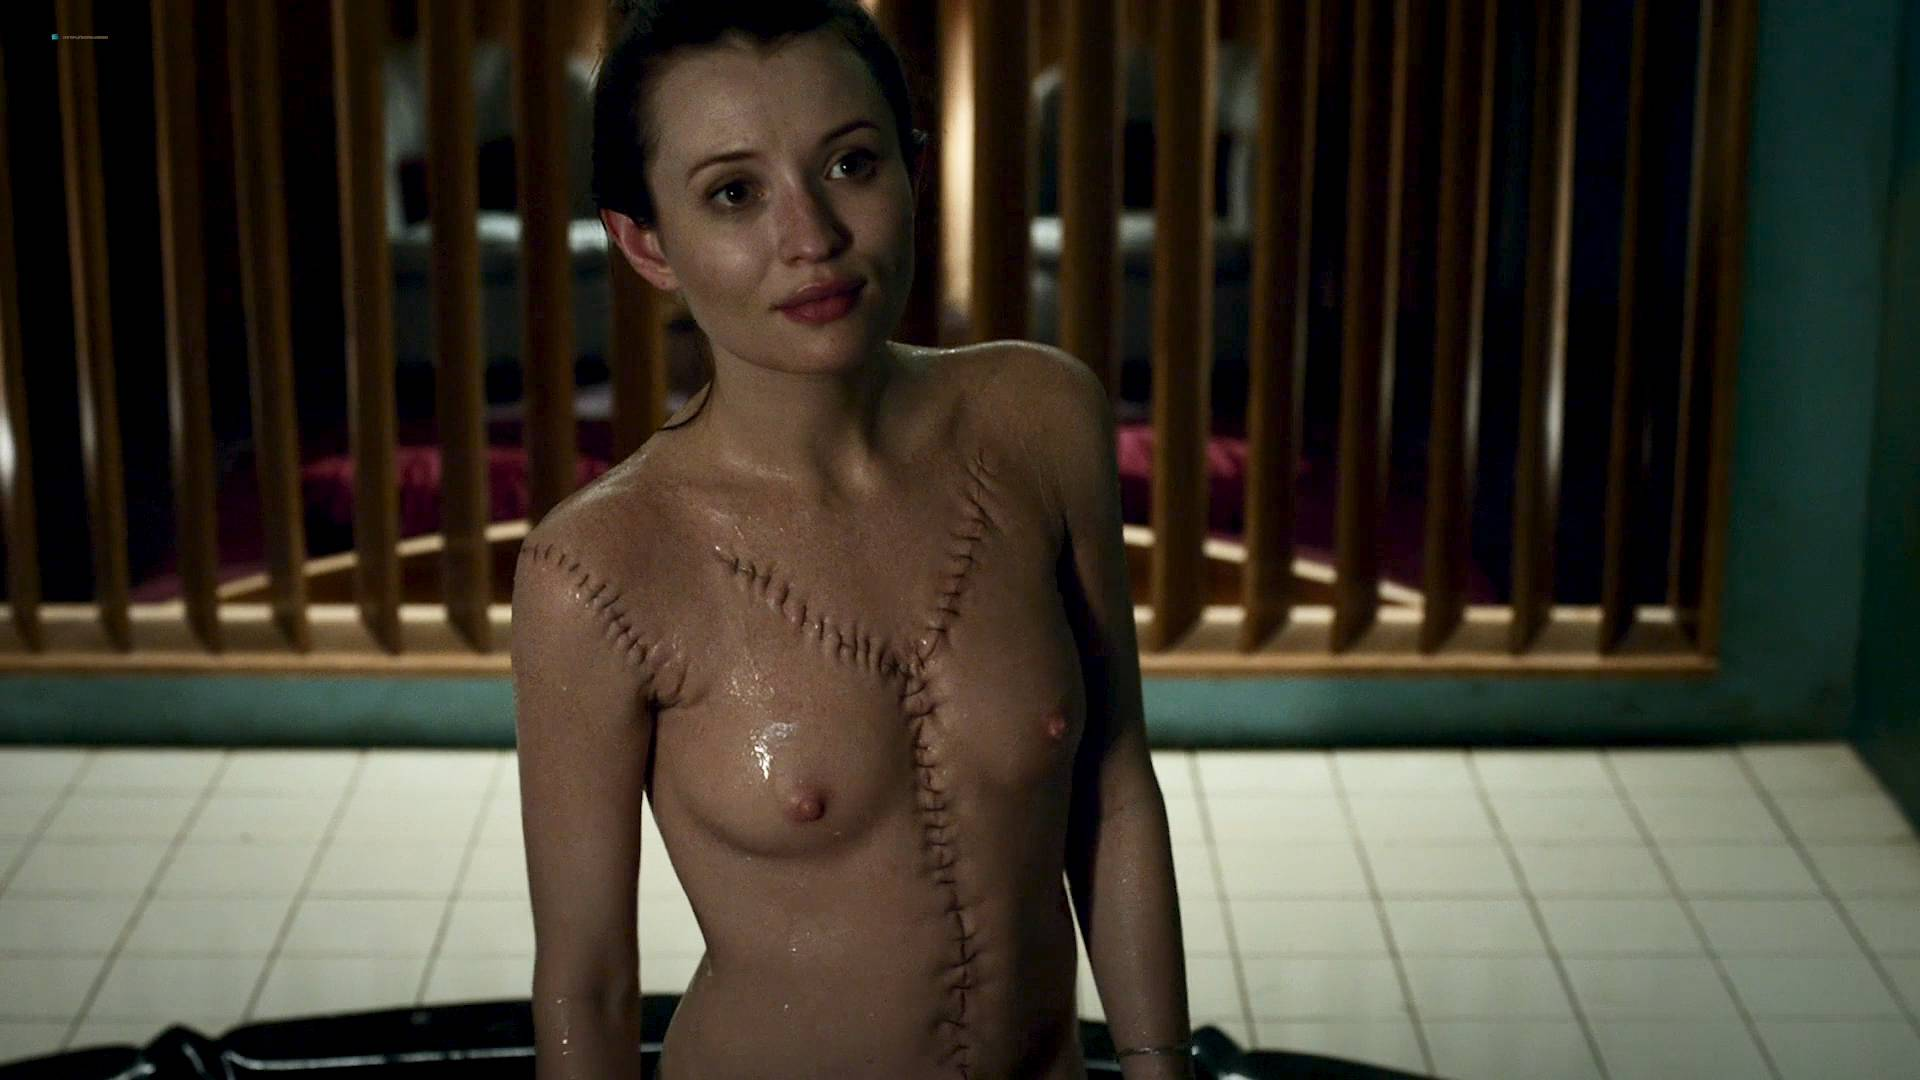 Emily browning topless